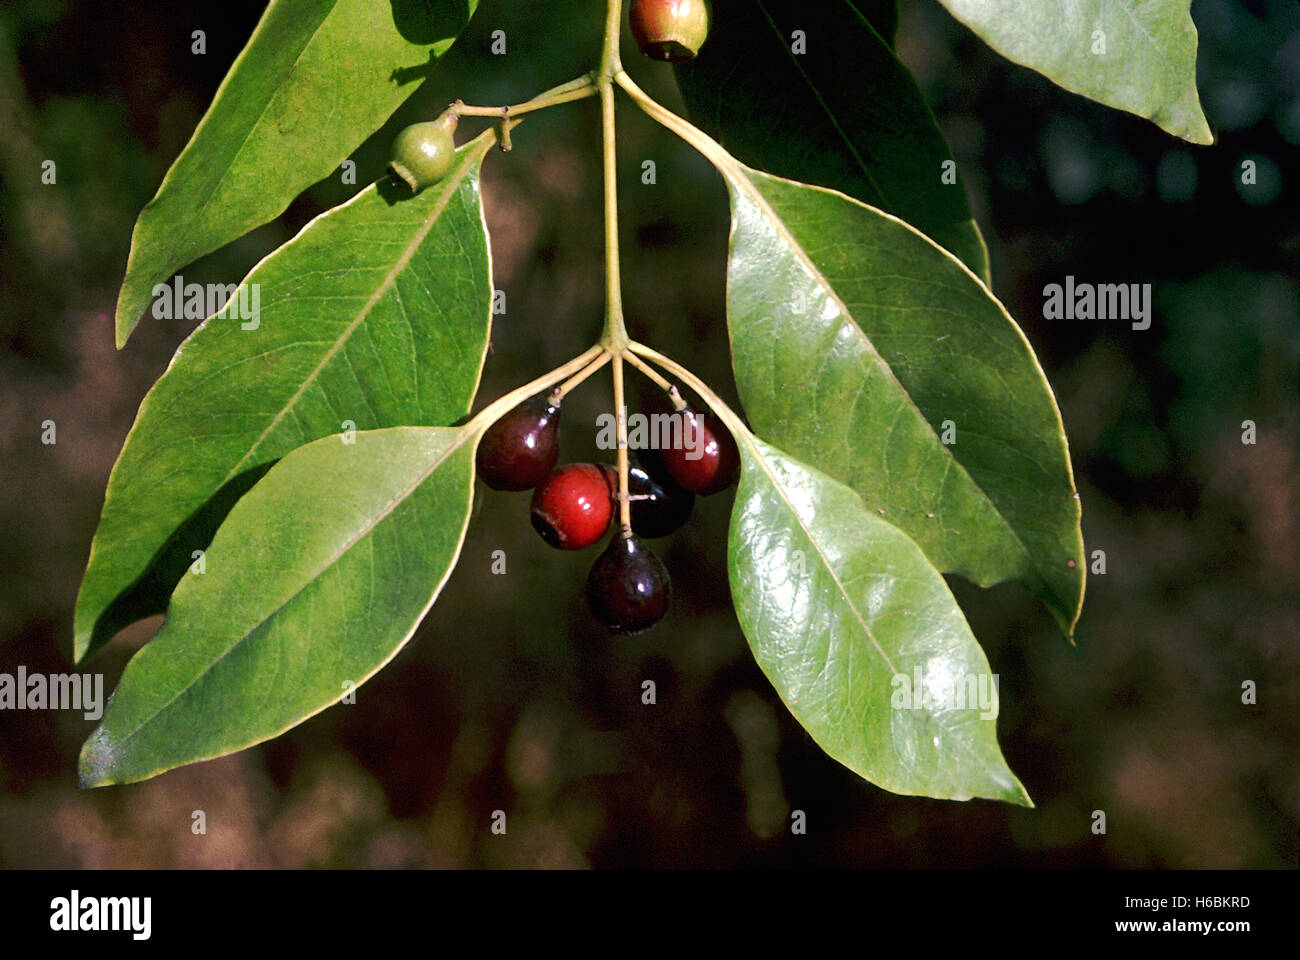 Fruits. Santalum Album. Sandalwood tree. Family: Santalaceae. Well-known for its valuable fragrant heartwood which - Stock Image